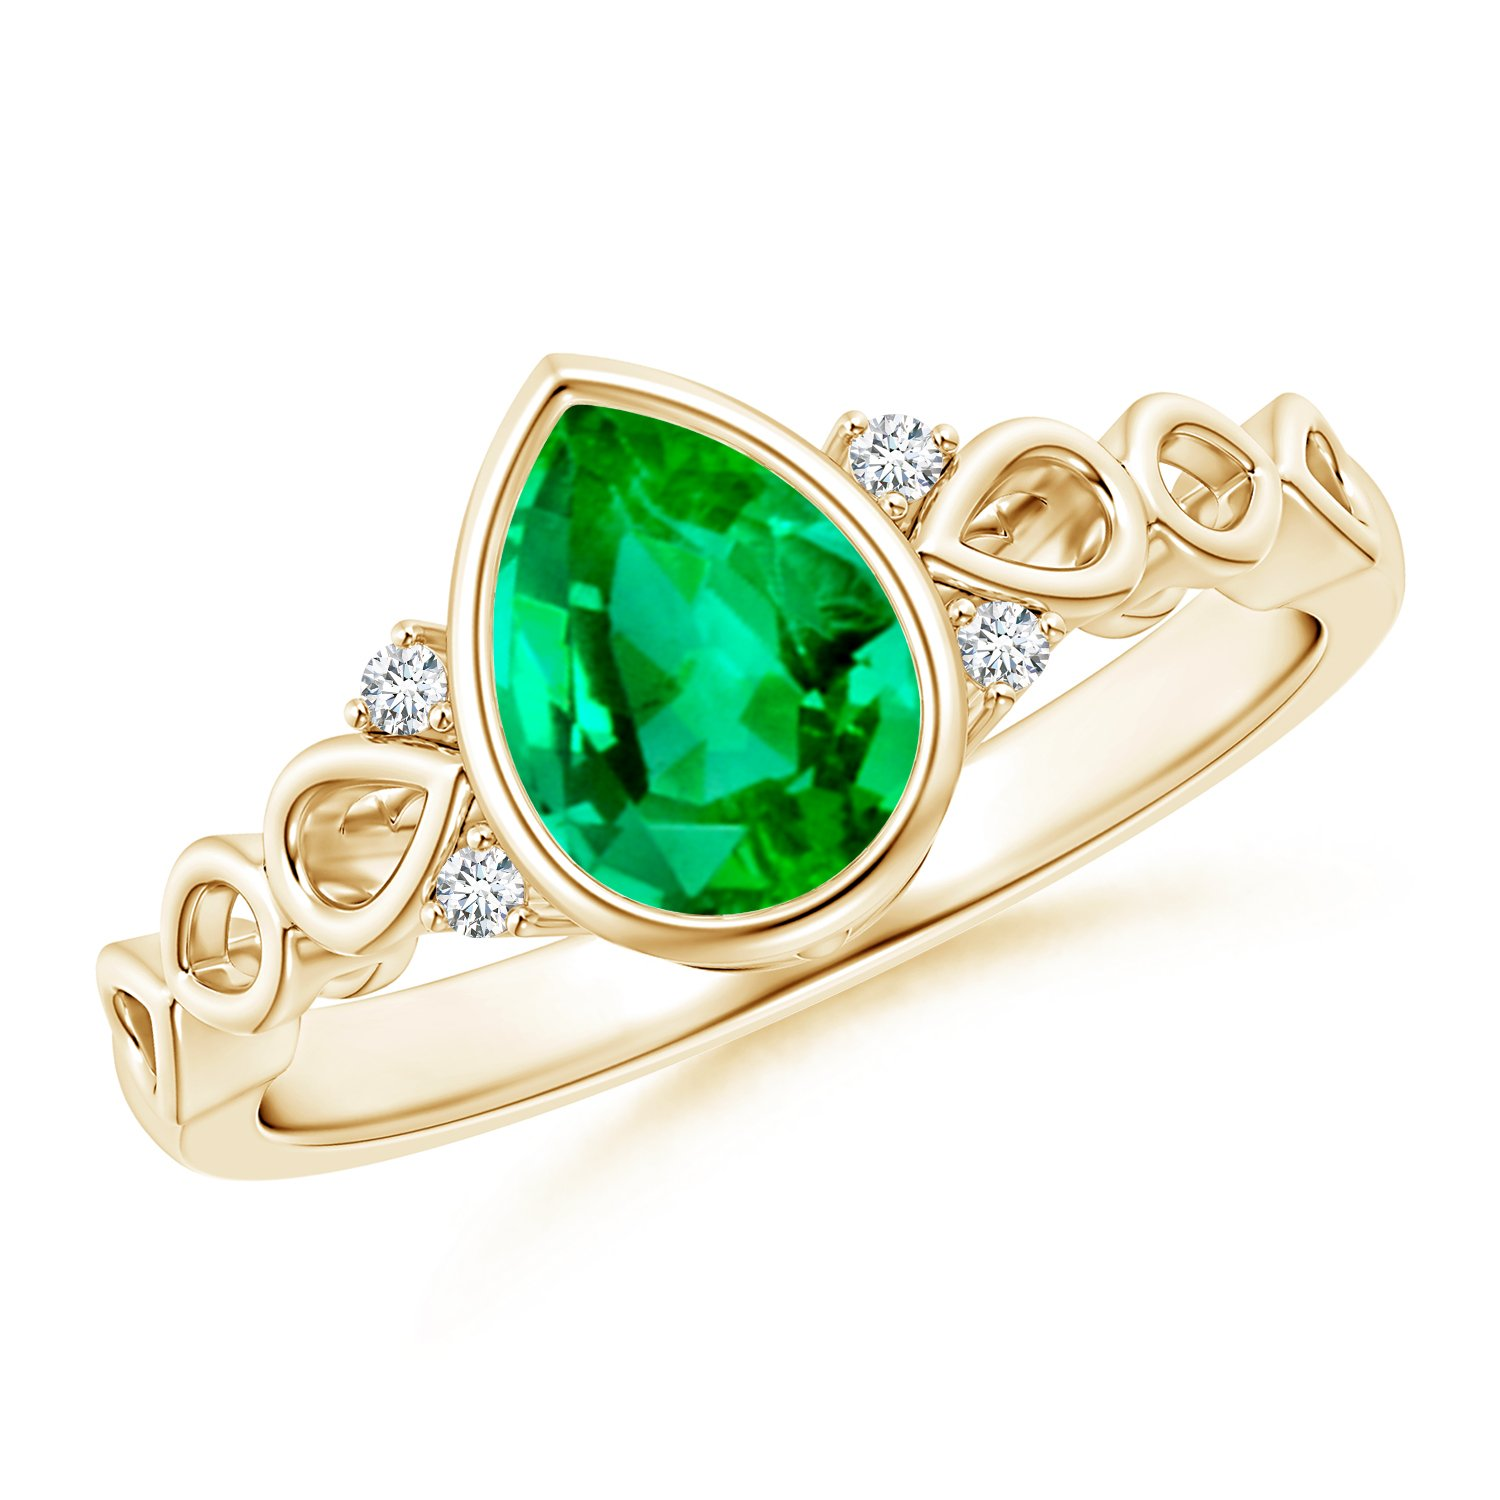 May Birthstone - Bezel Set Vintage Pear Emerald Ring for Women with Diamond Accents in 14K Yellow Gold (8x6mm Emerald)